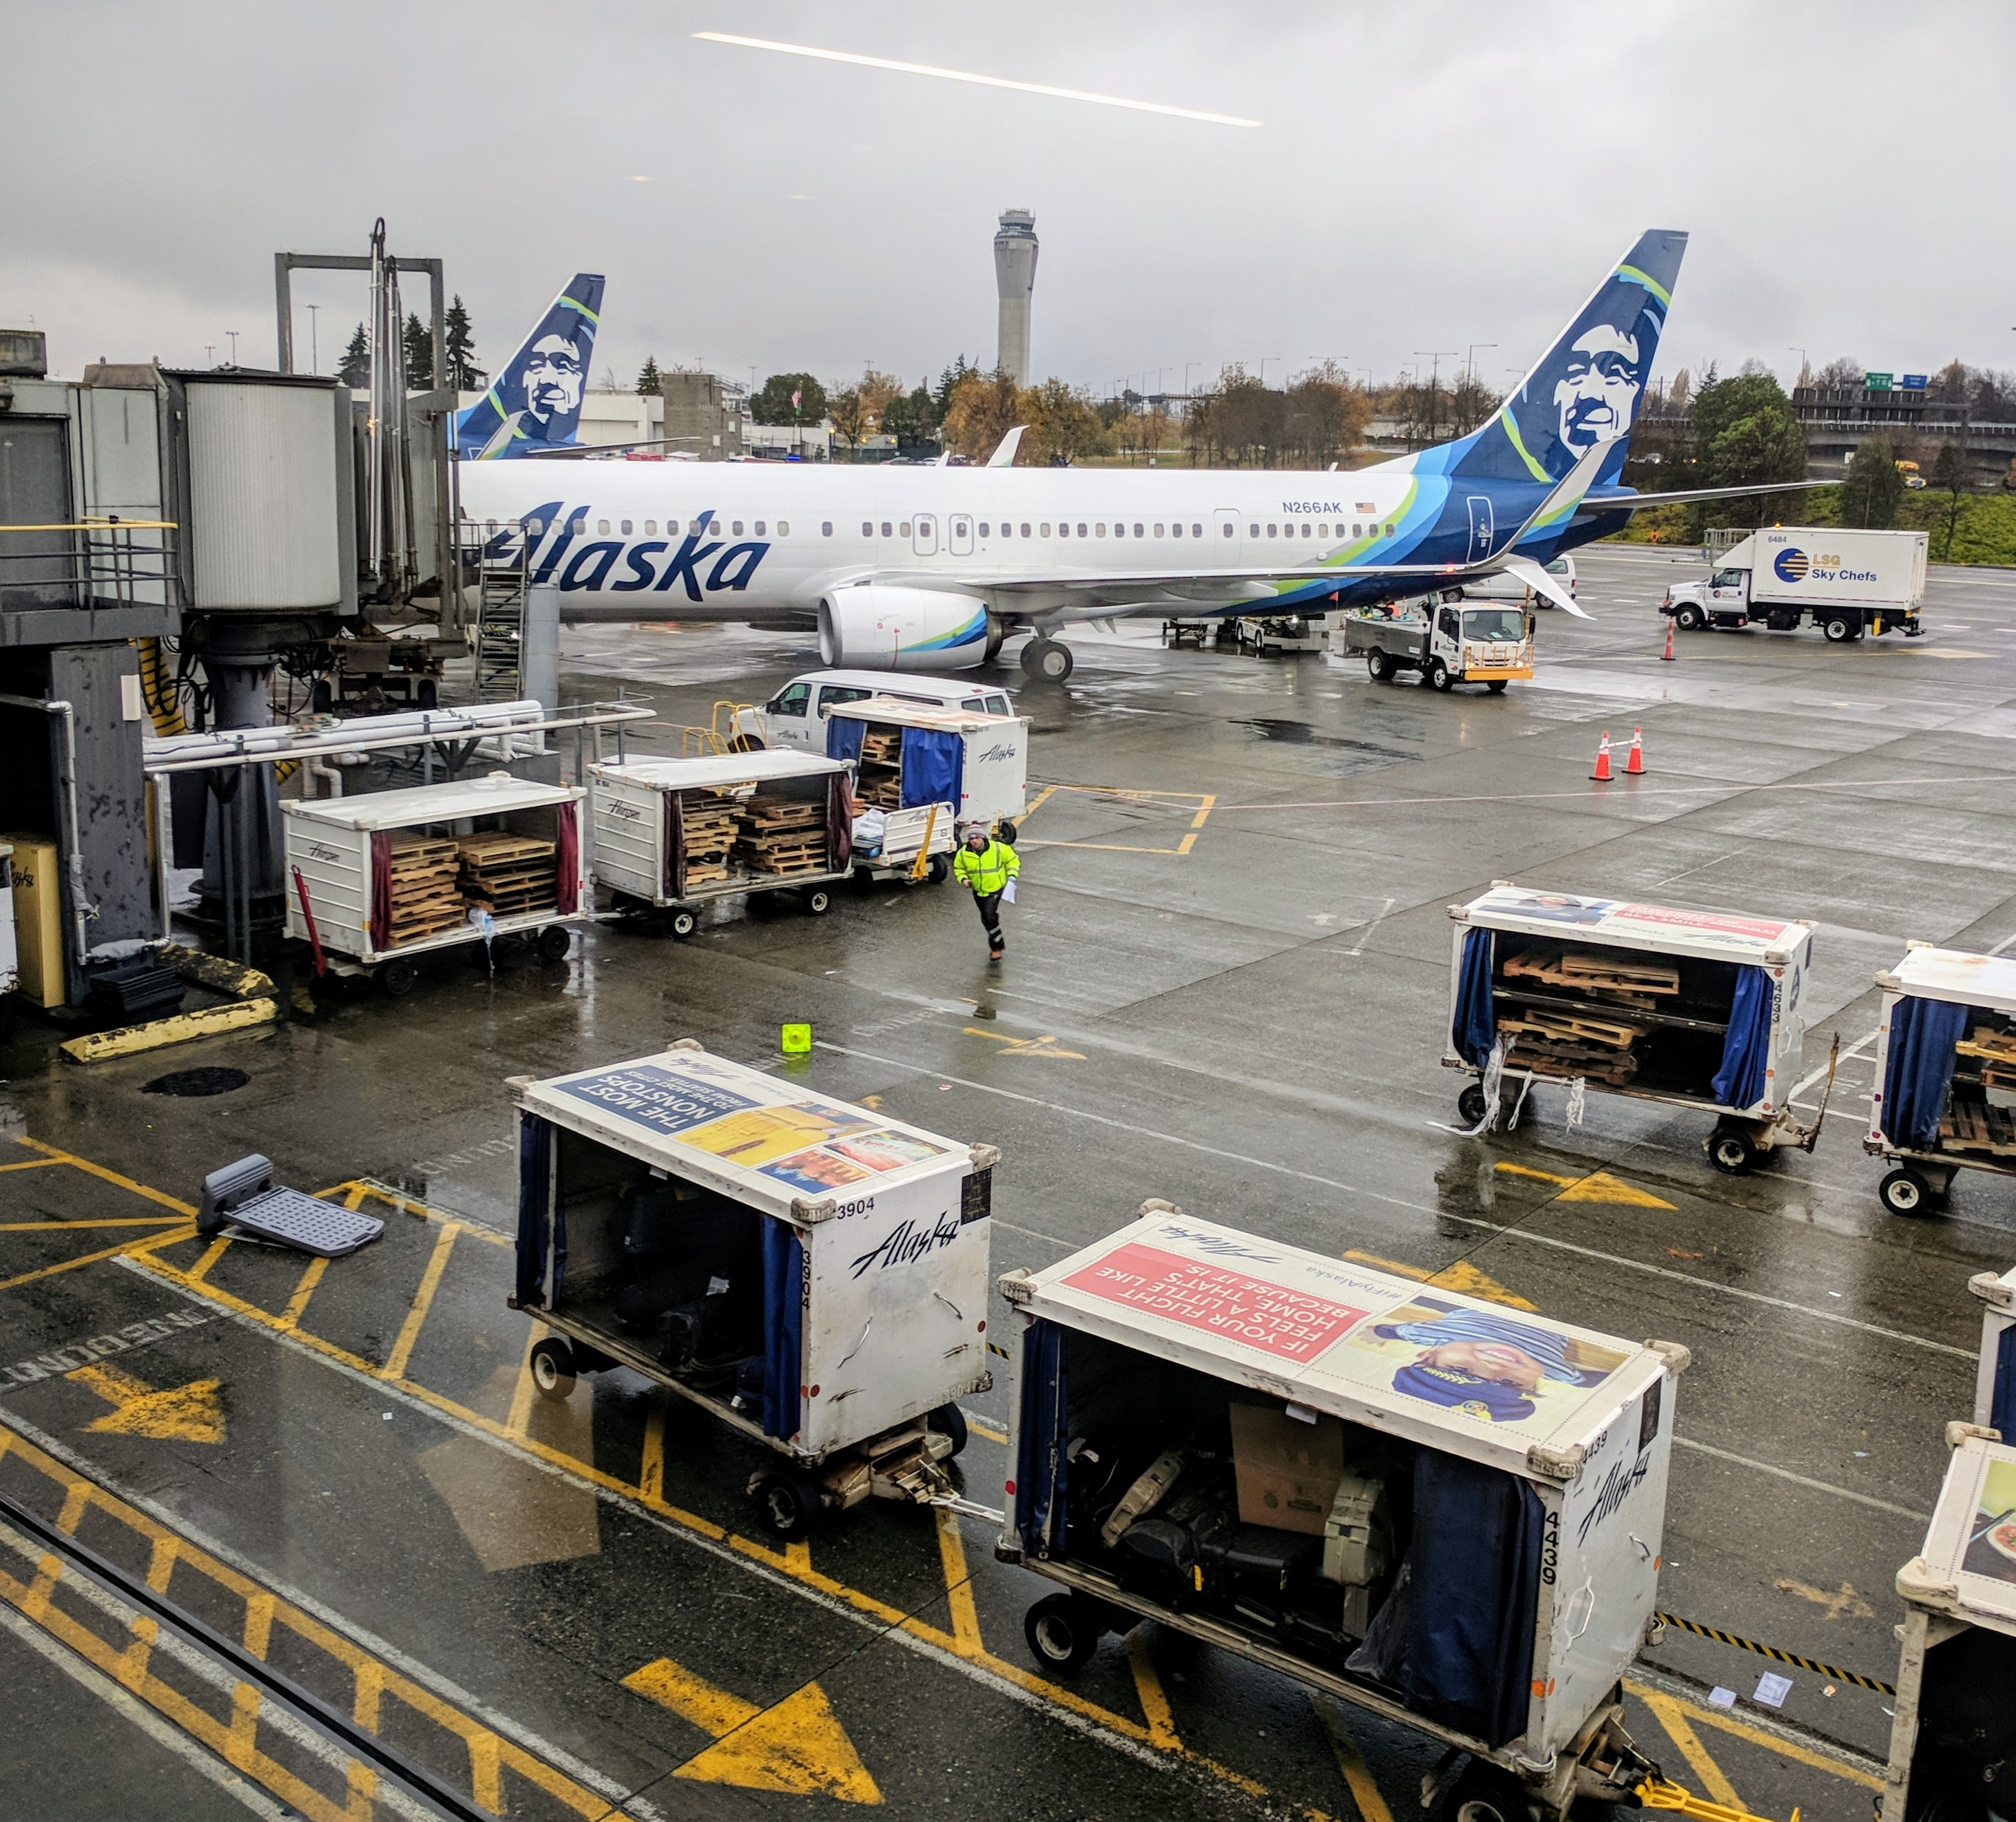 According to FlightAware, there have been over 360 flights delayed in or out of Sea-Tac Airport with delays stretching into Friday afternoon reaching over 2.5 hours. (Photo courtesy Scott Carty)<p></p>